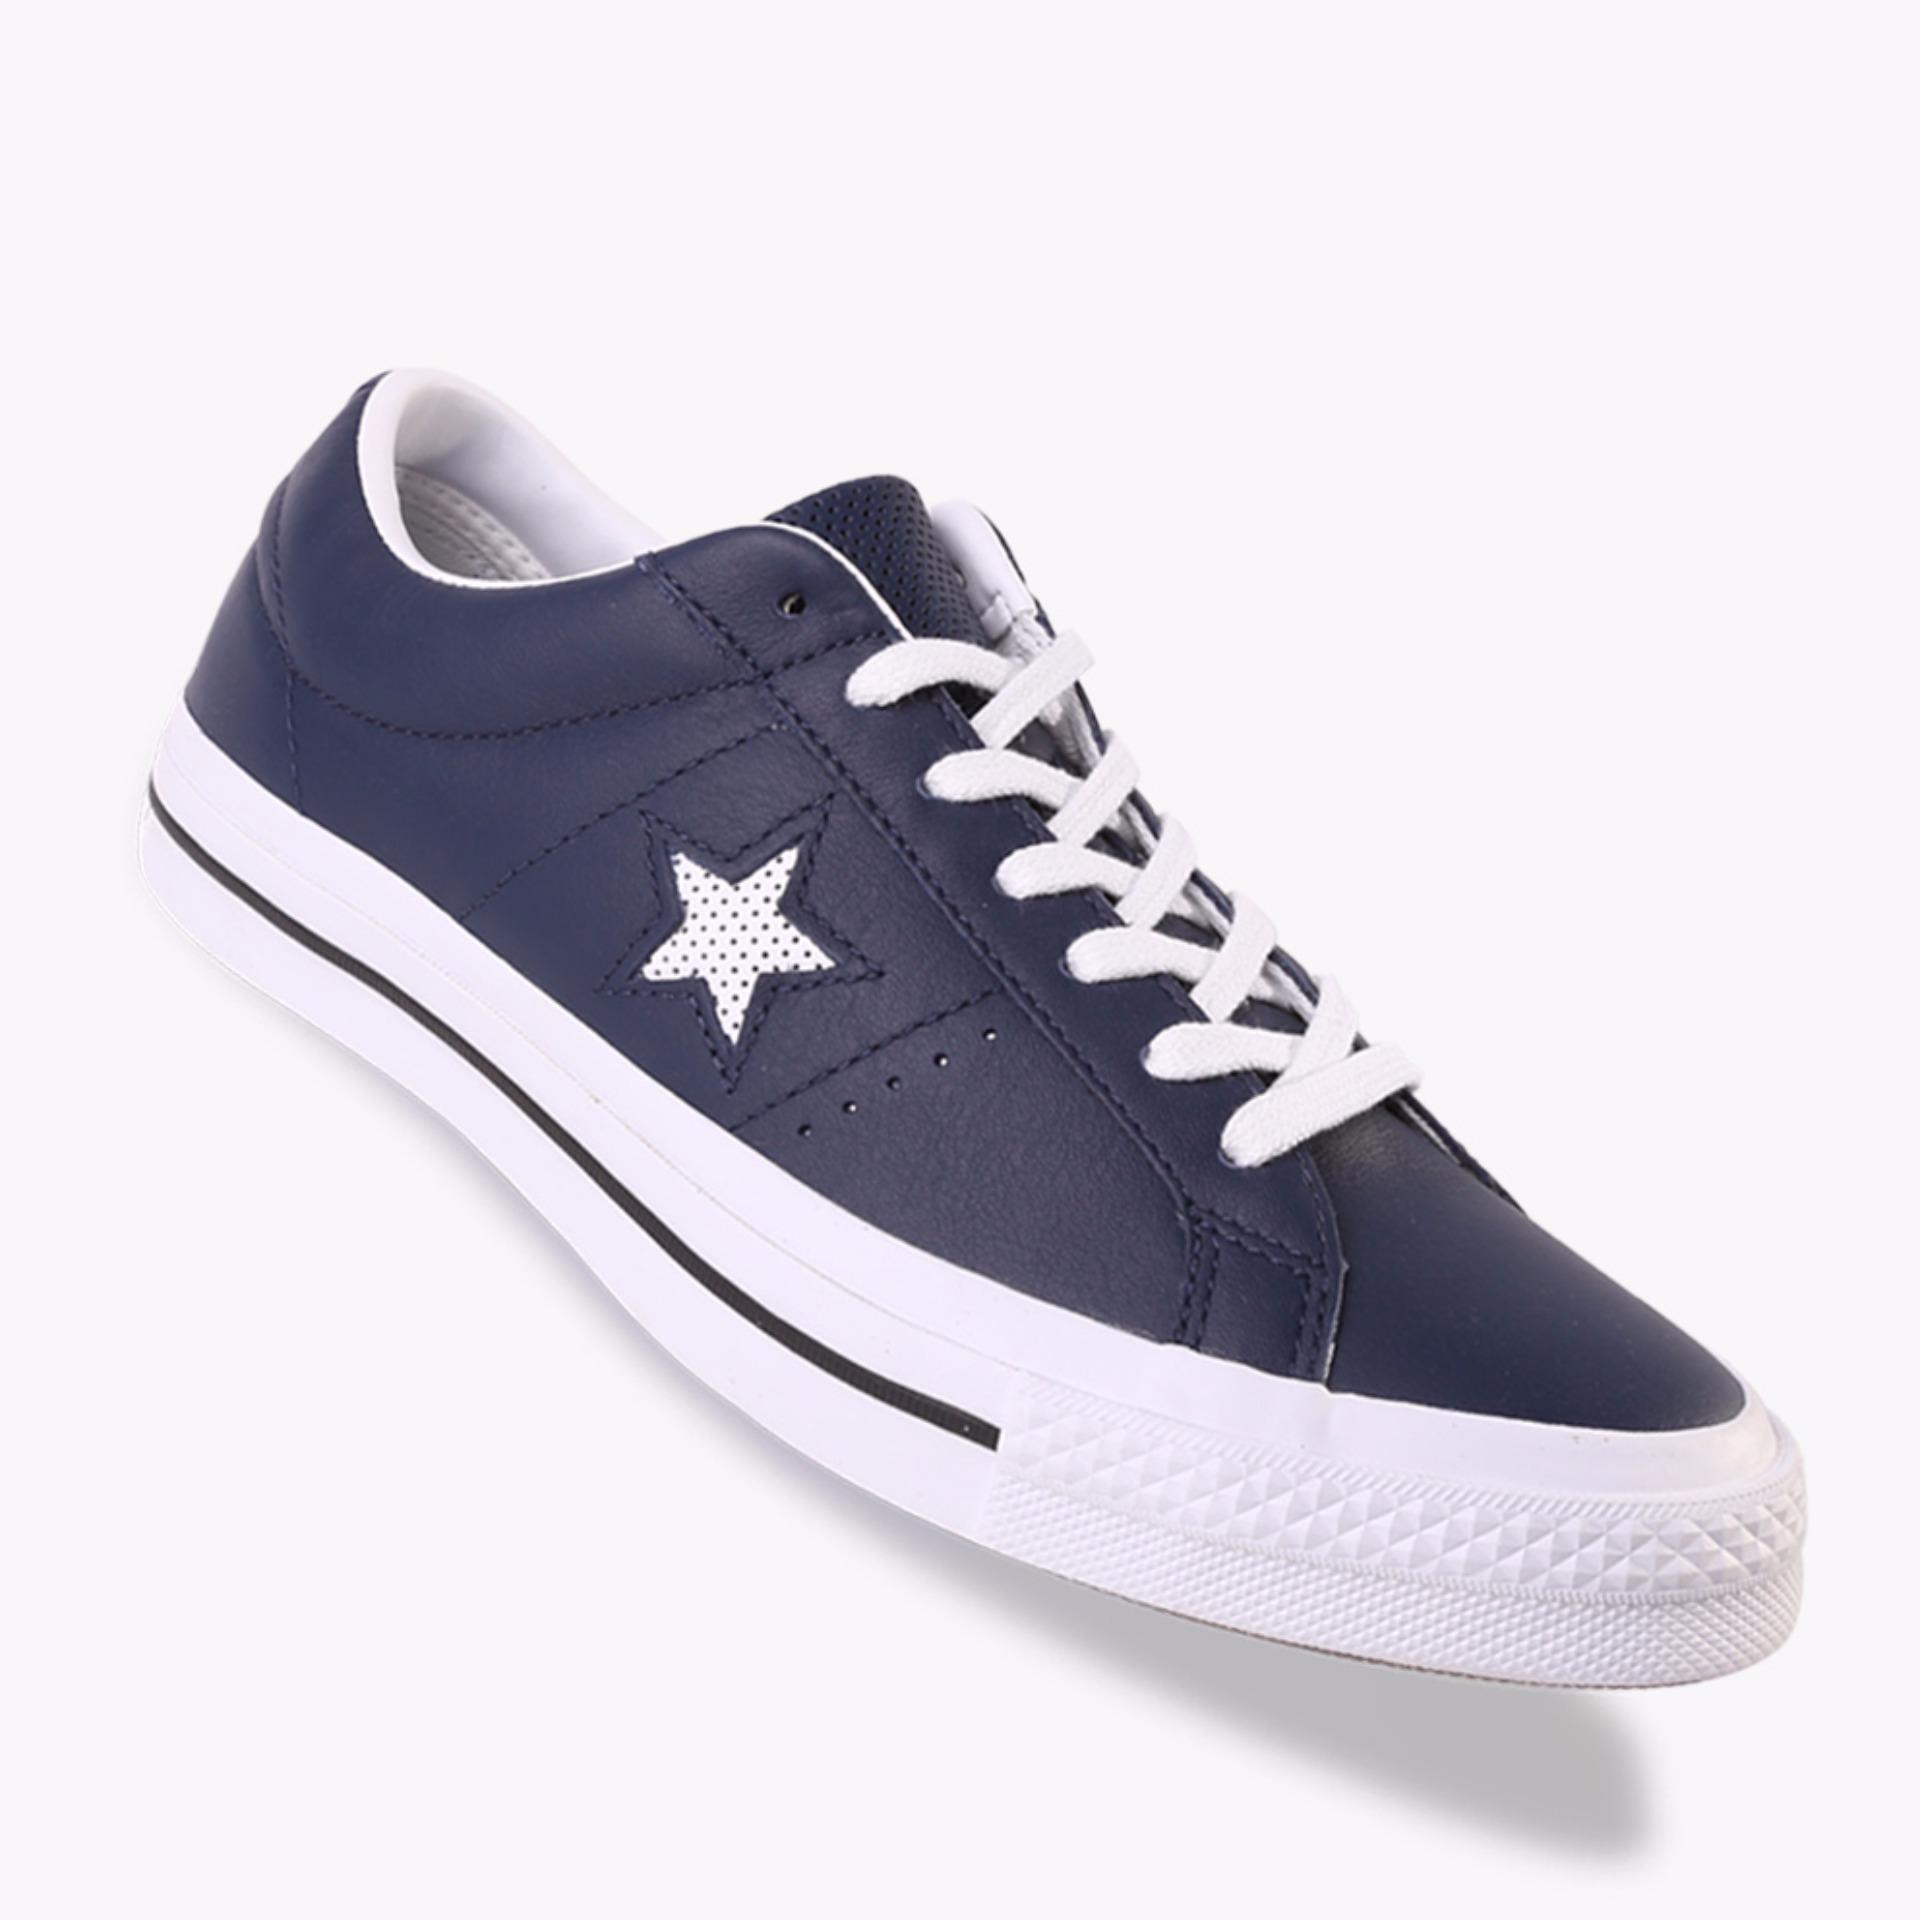 Jual Beli Converse One Star Ox Men S Sneakers Shoes Navy Di Indonesia